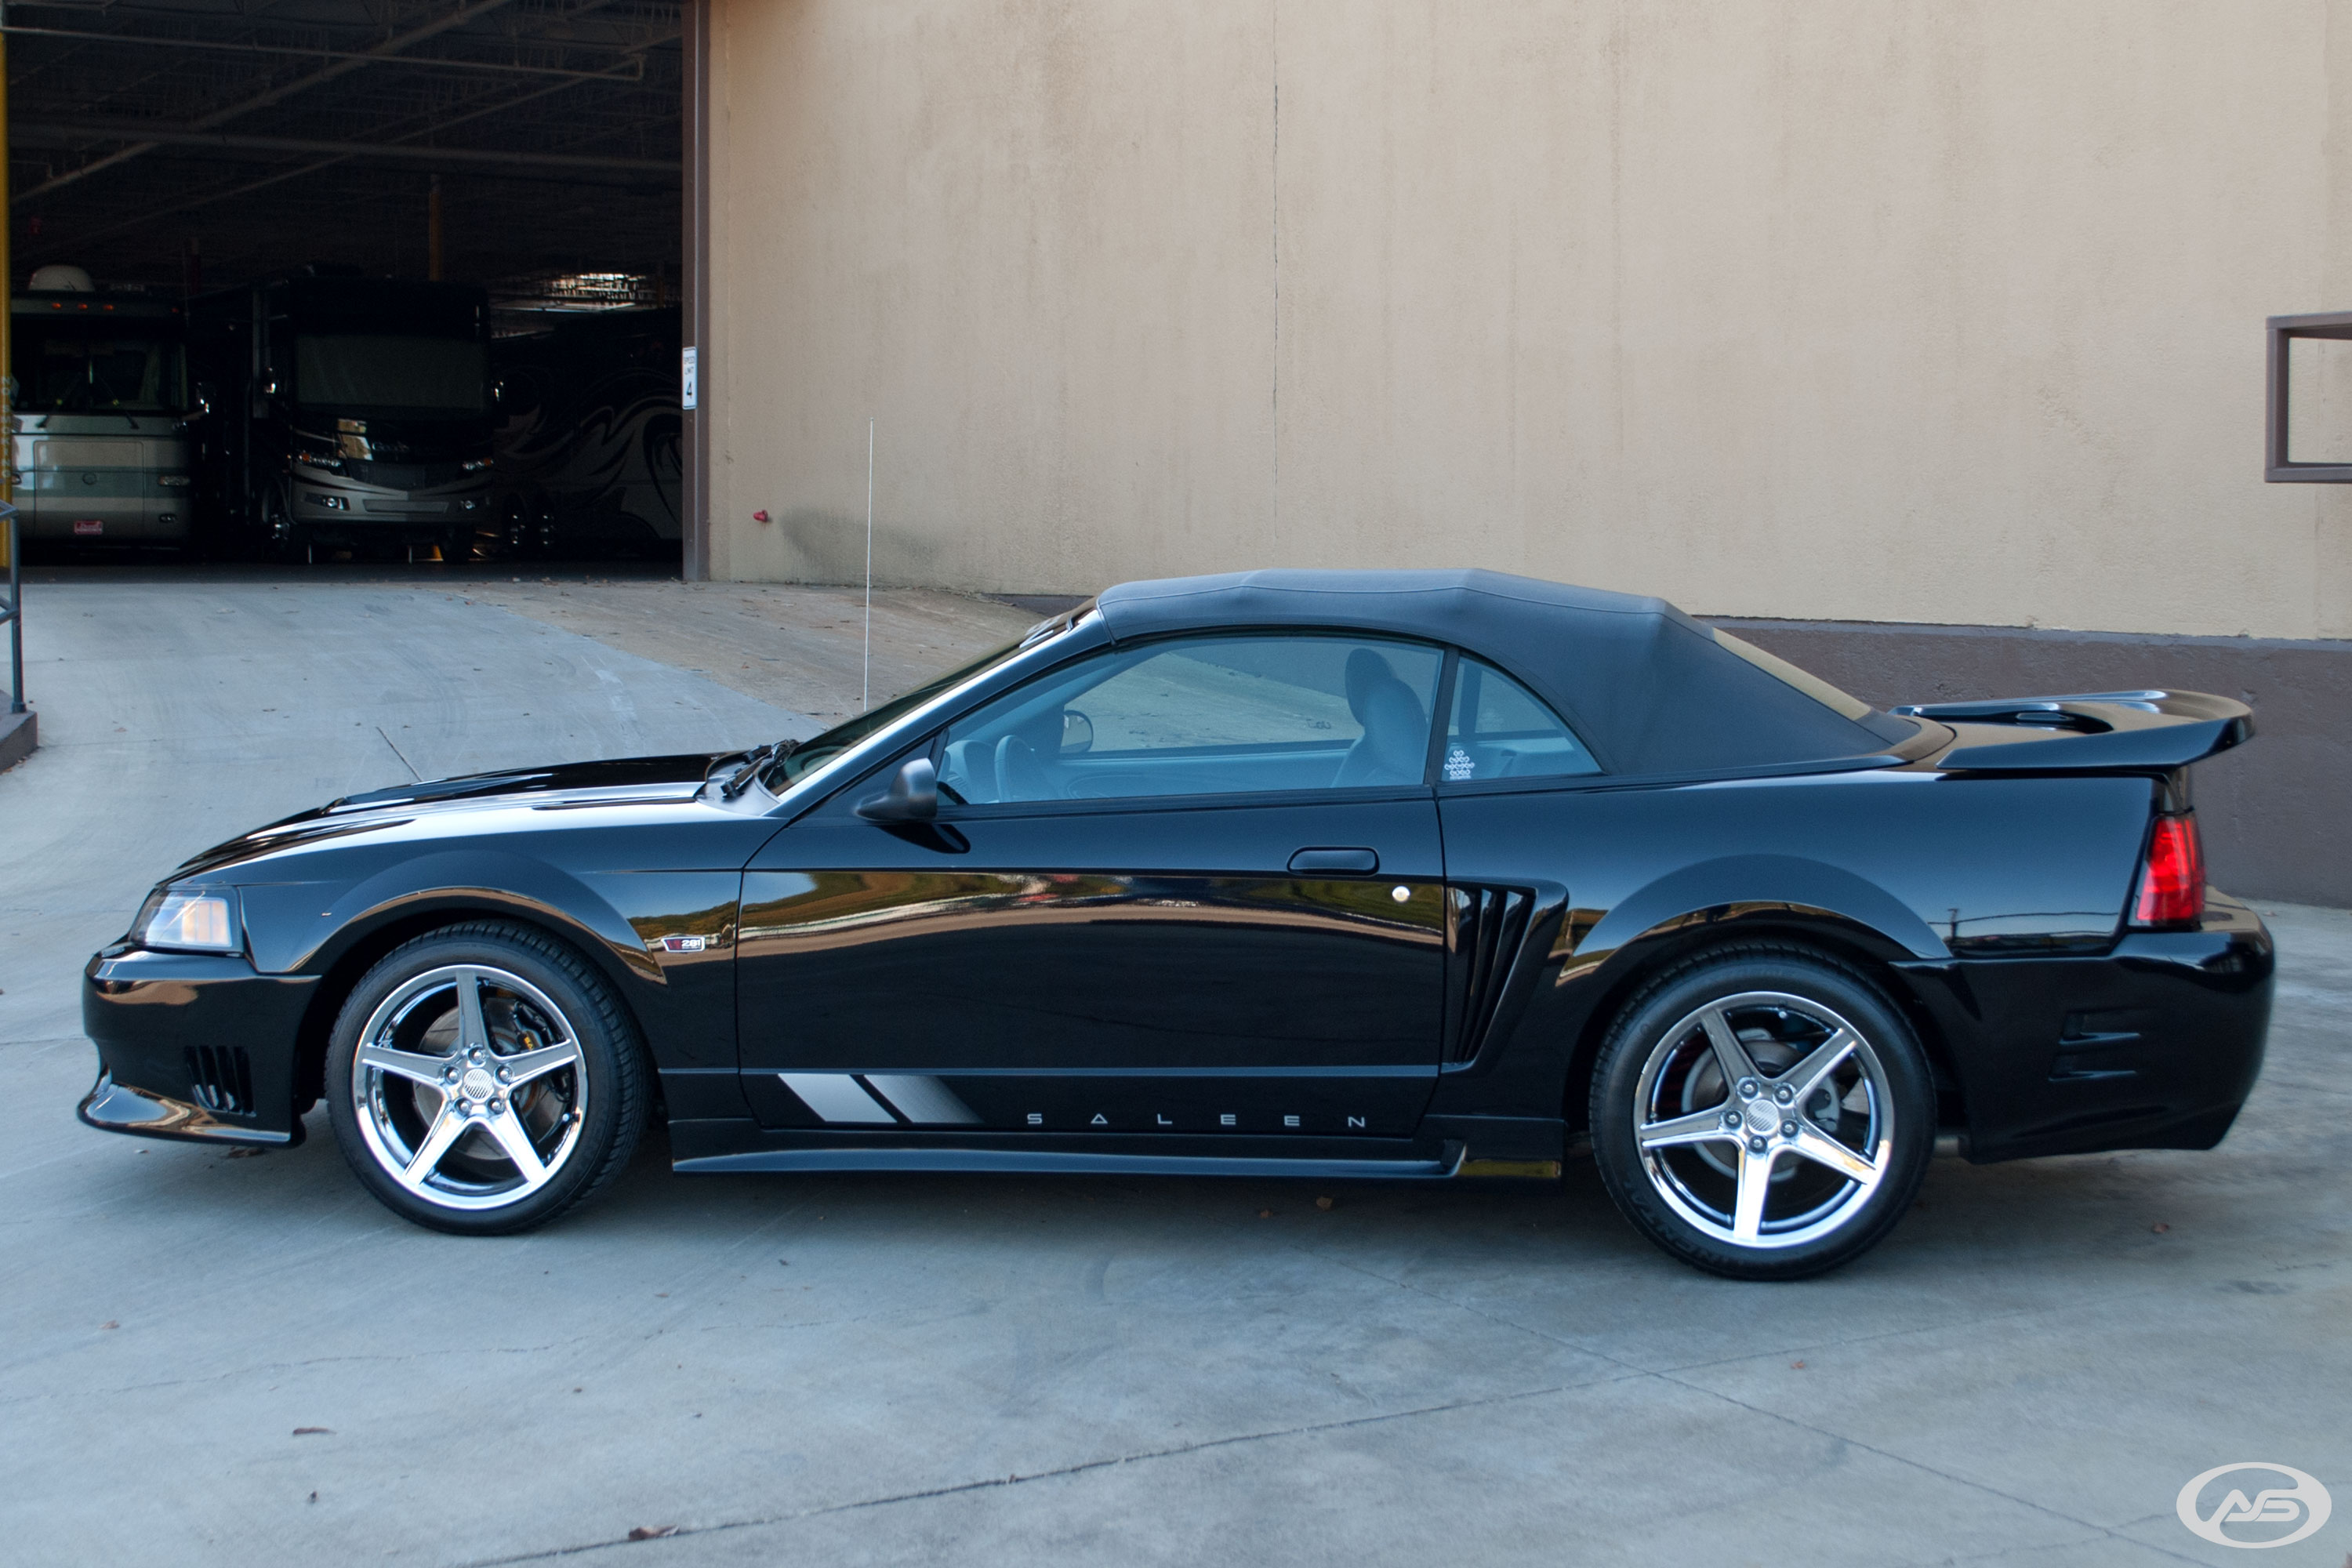 2004 saleen s281 s c mustang for sale 14908 mcg. Black Bedroom Furniture Sets. Home Design Ideas